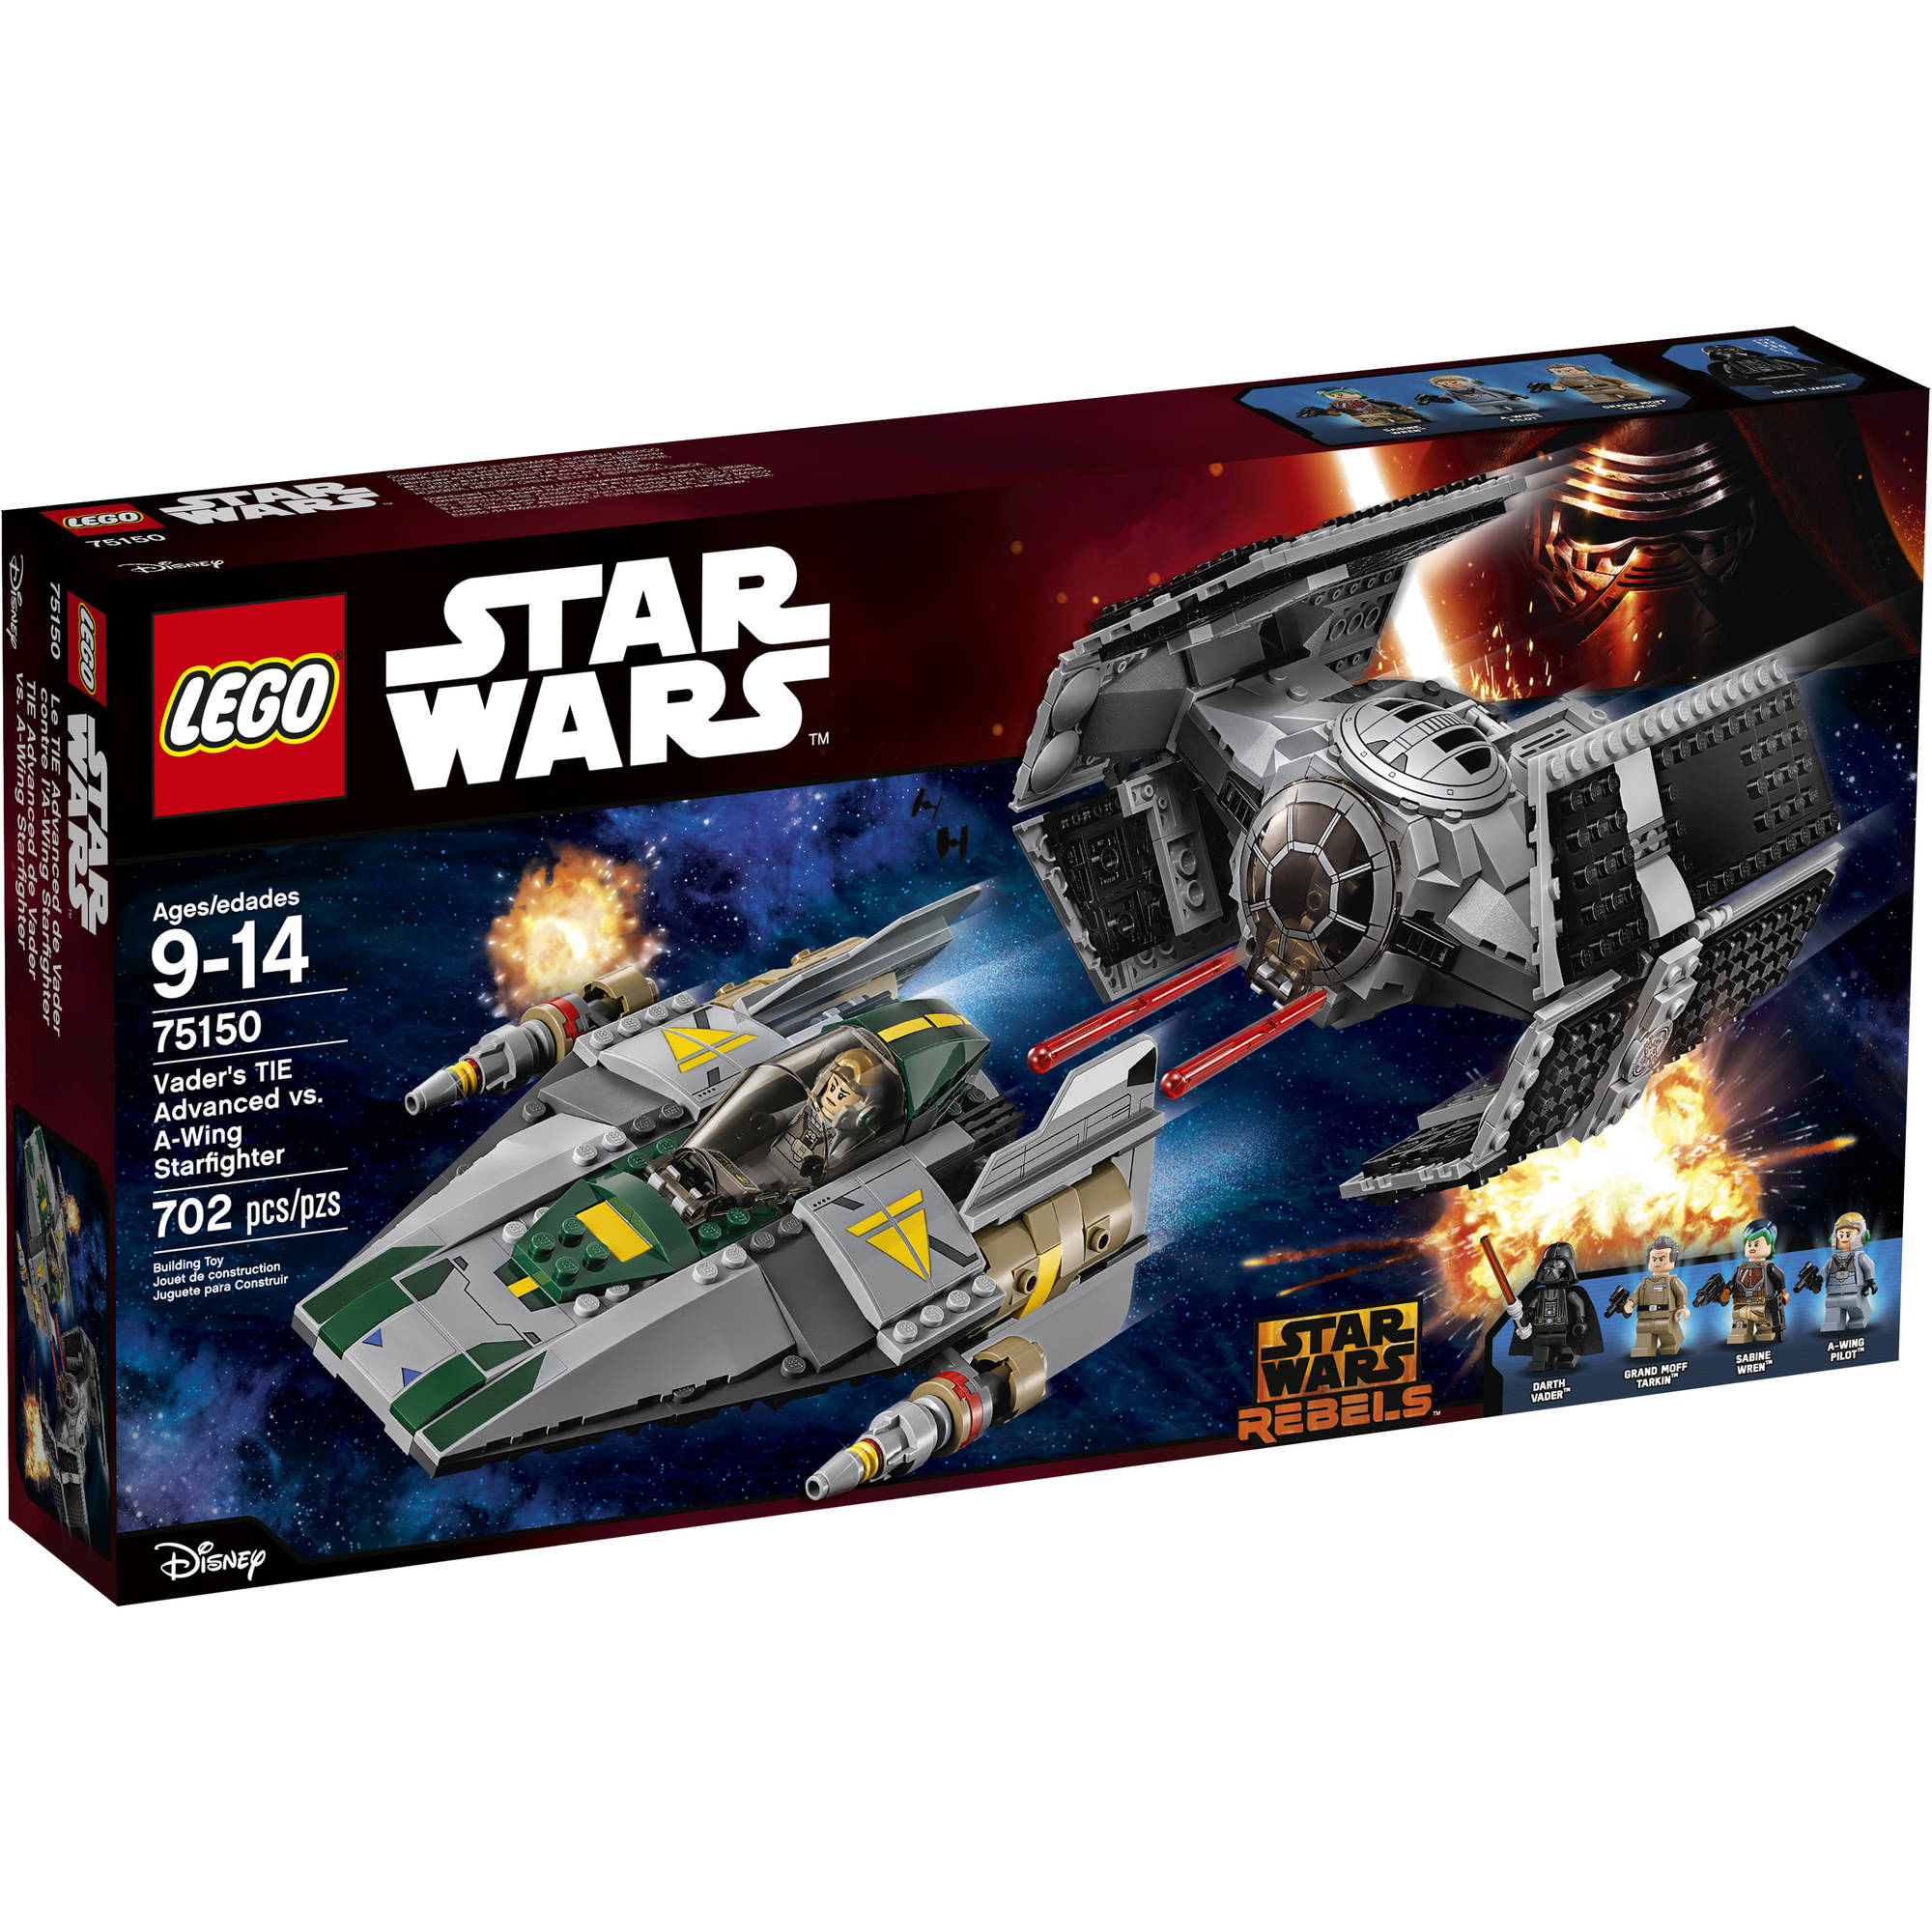 Lego Star Wars Vader's TIE Advanced vs. A-Wing Starfighter 75150 by LEGO Systems, Inc.